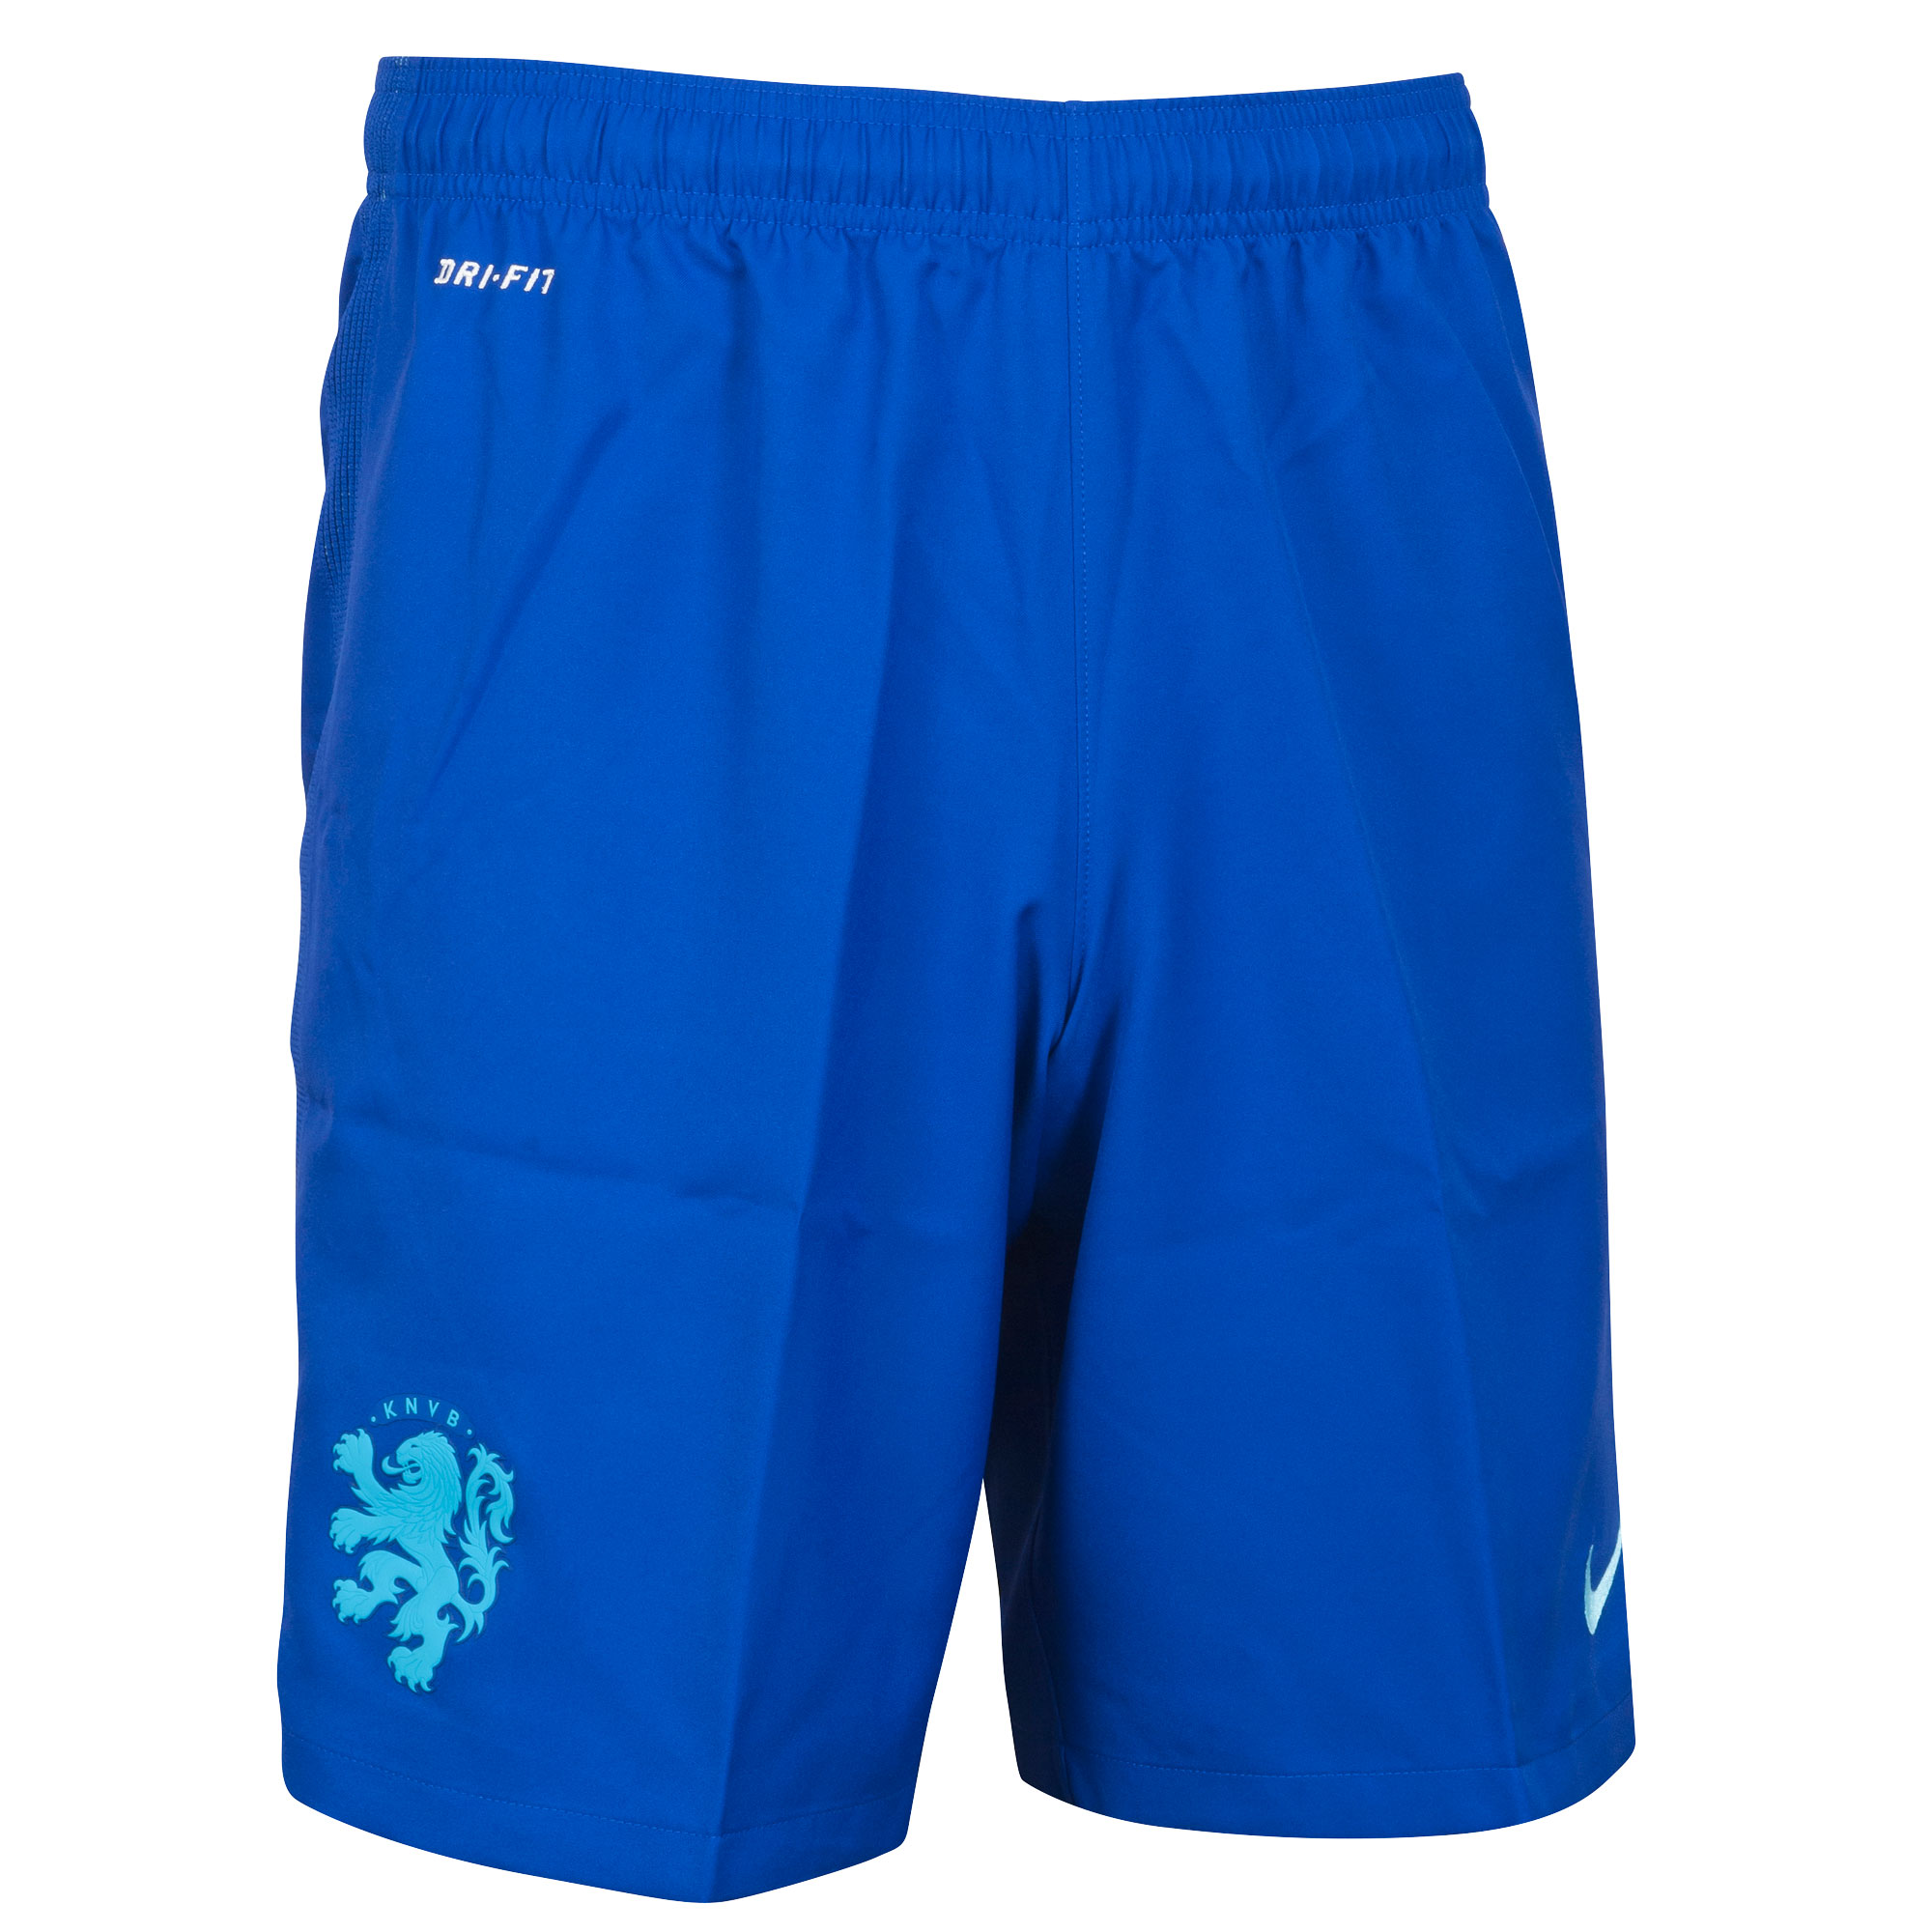 Holland Away KIDS Shorts 2016 / 2017 - 152-158